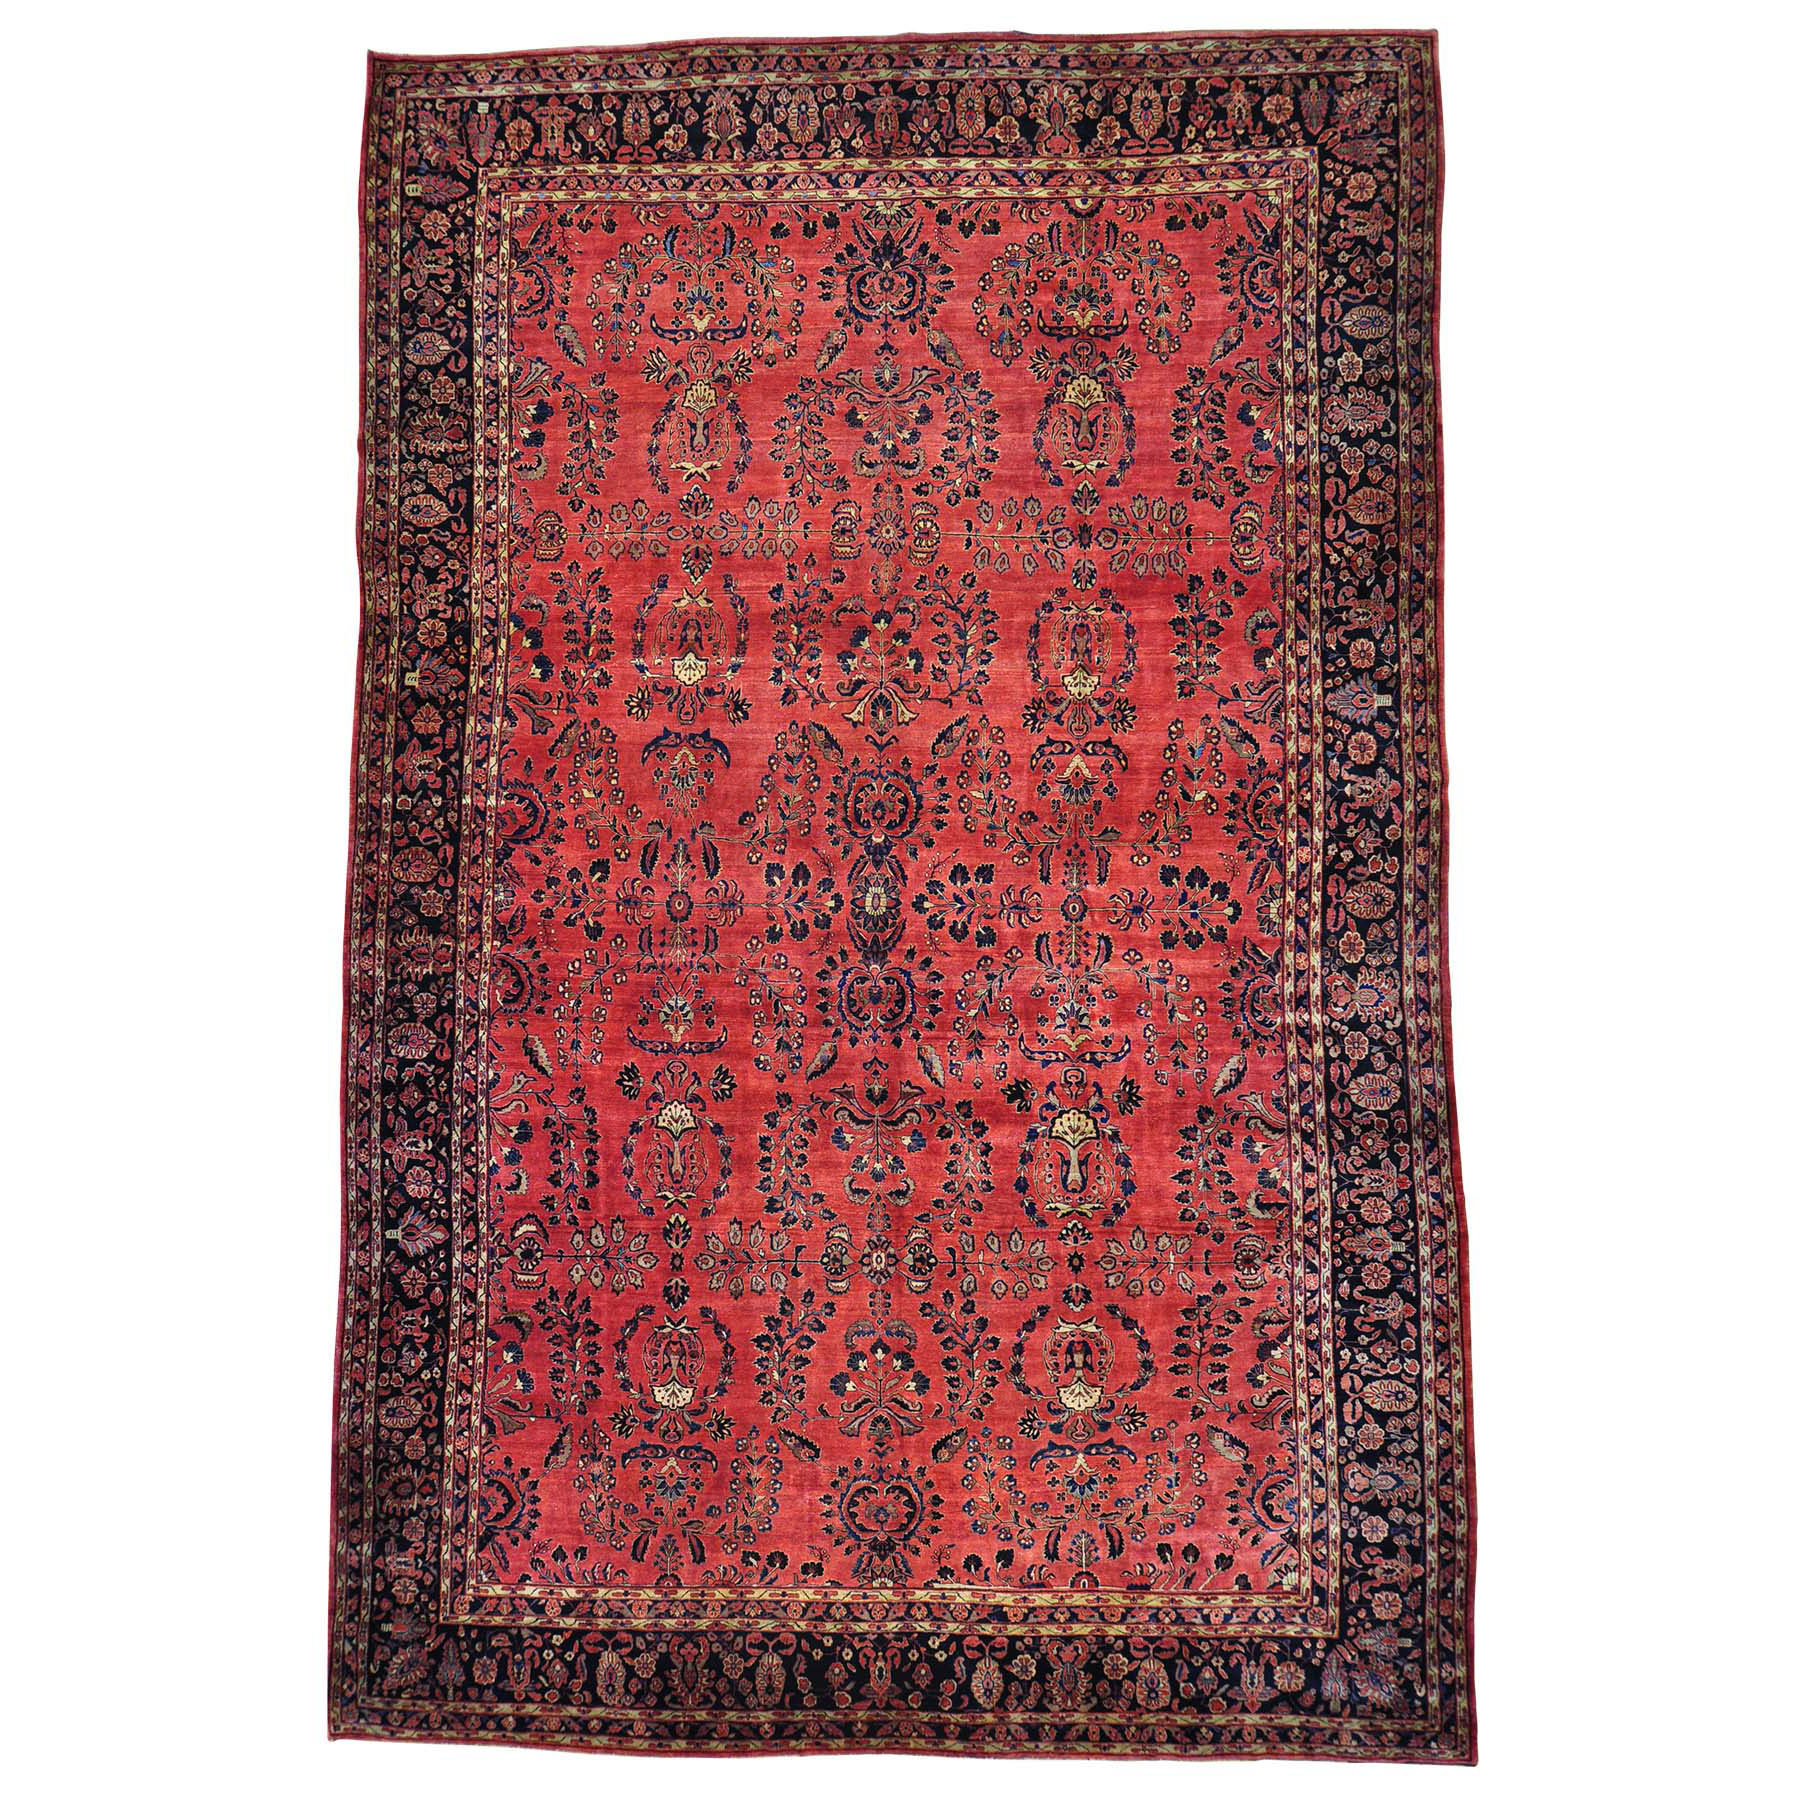 Antique Collection Hand Knotted Red Rug No: 154214